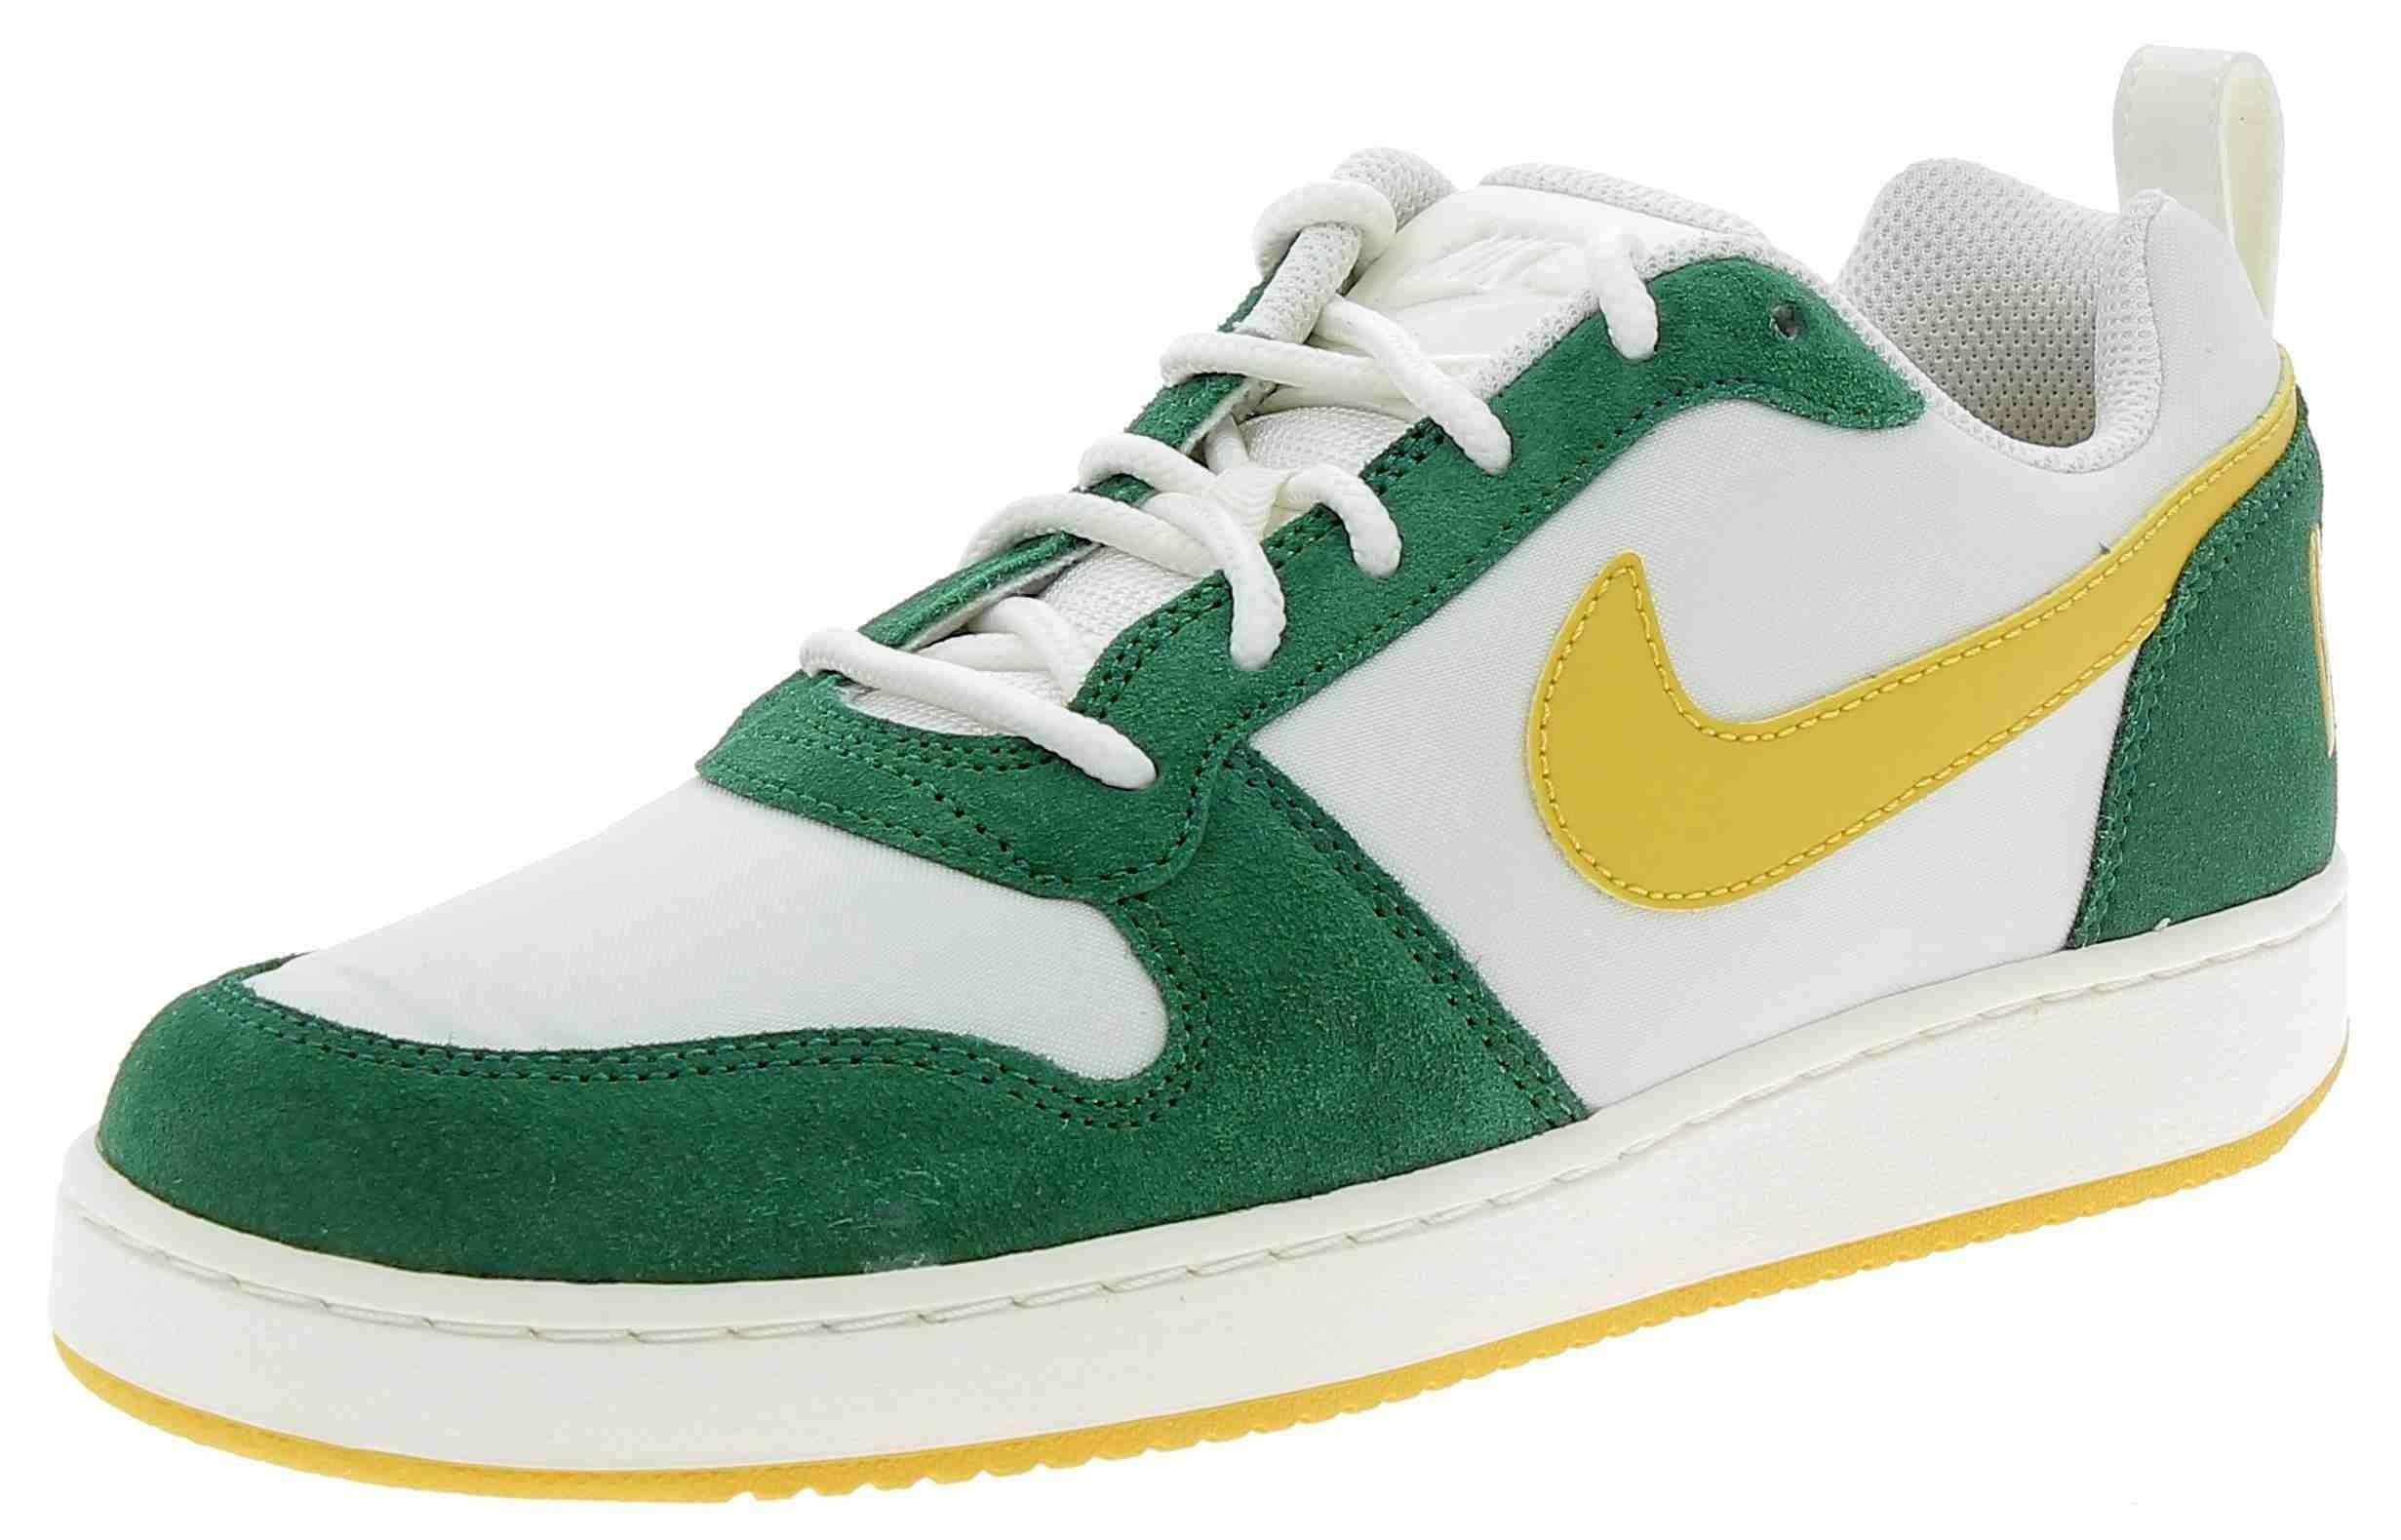 nike nike court borough low prem scarpe sportive uomo bianche verdi